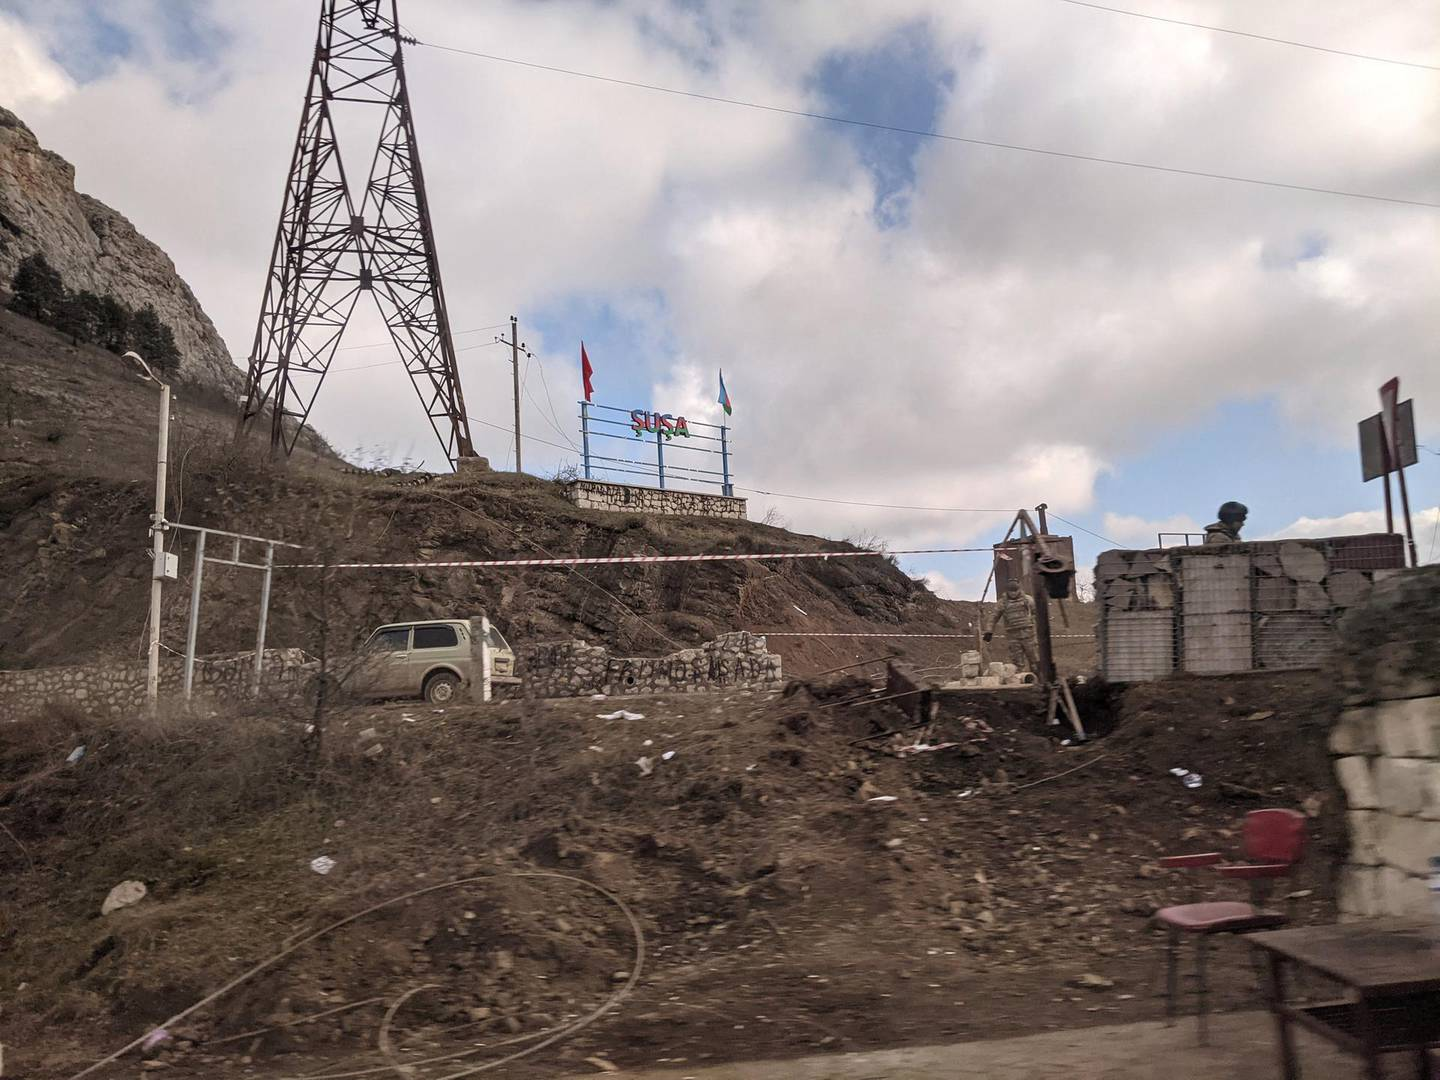 The Azerbaijani 'SHUSHA' sign flanked by Turkish and Azerbaijani flags at the entrance to Shusha just outside Stepanakert. Neil Hauer for The National